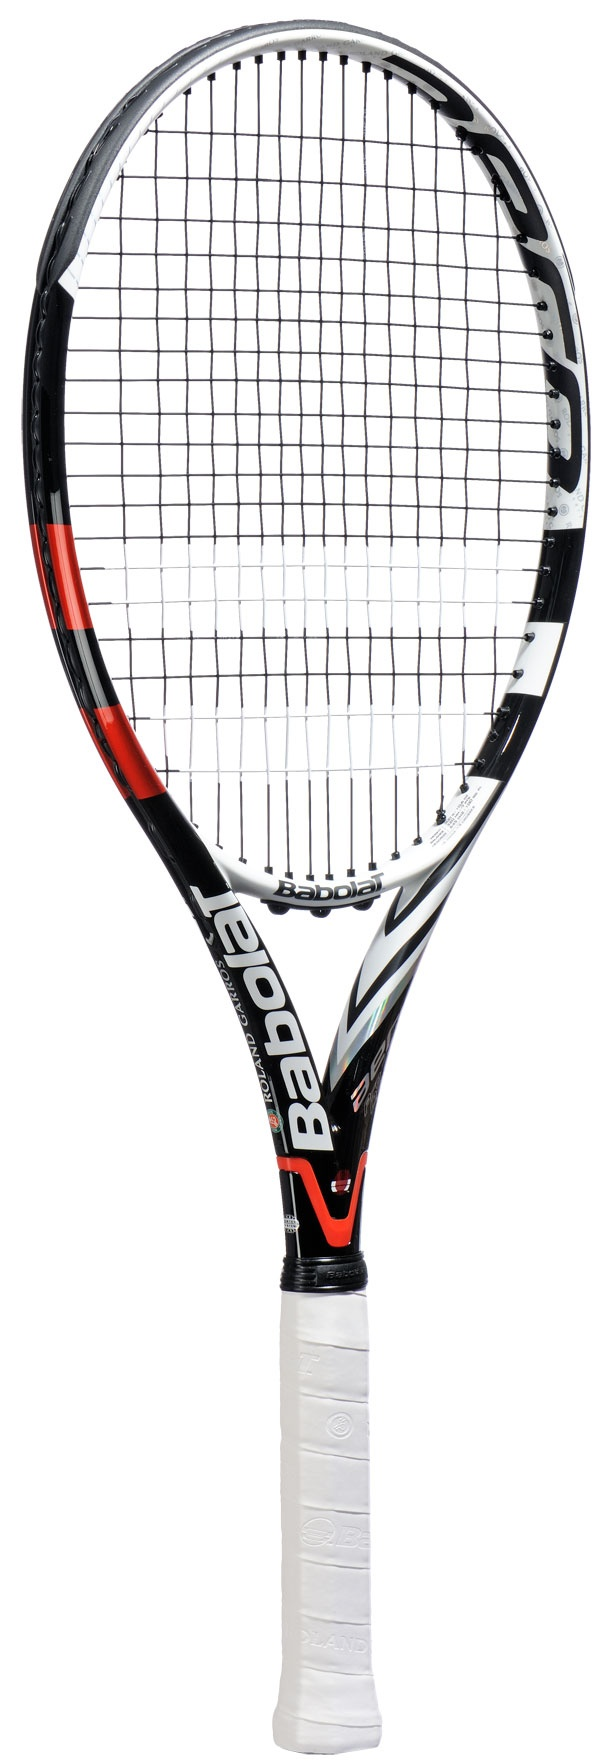 Roland Garros 2012 Aero Pro Drive tennis racquet. Available for a limited time from late May 2012. $259.95